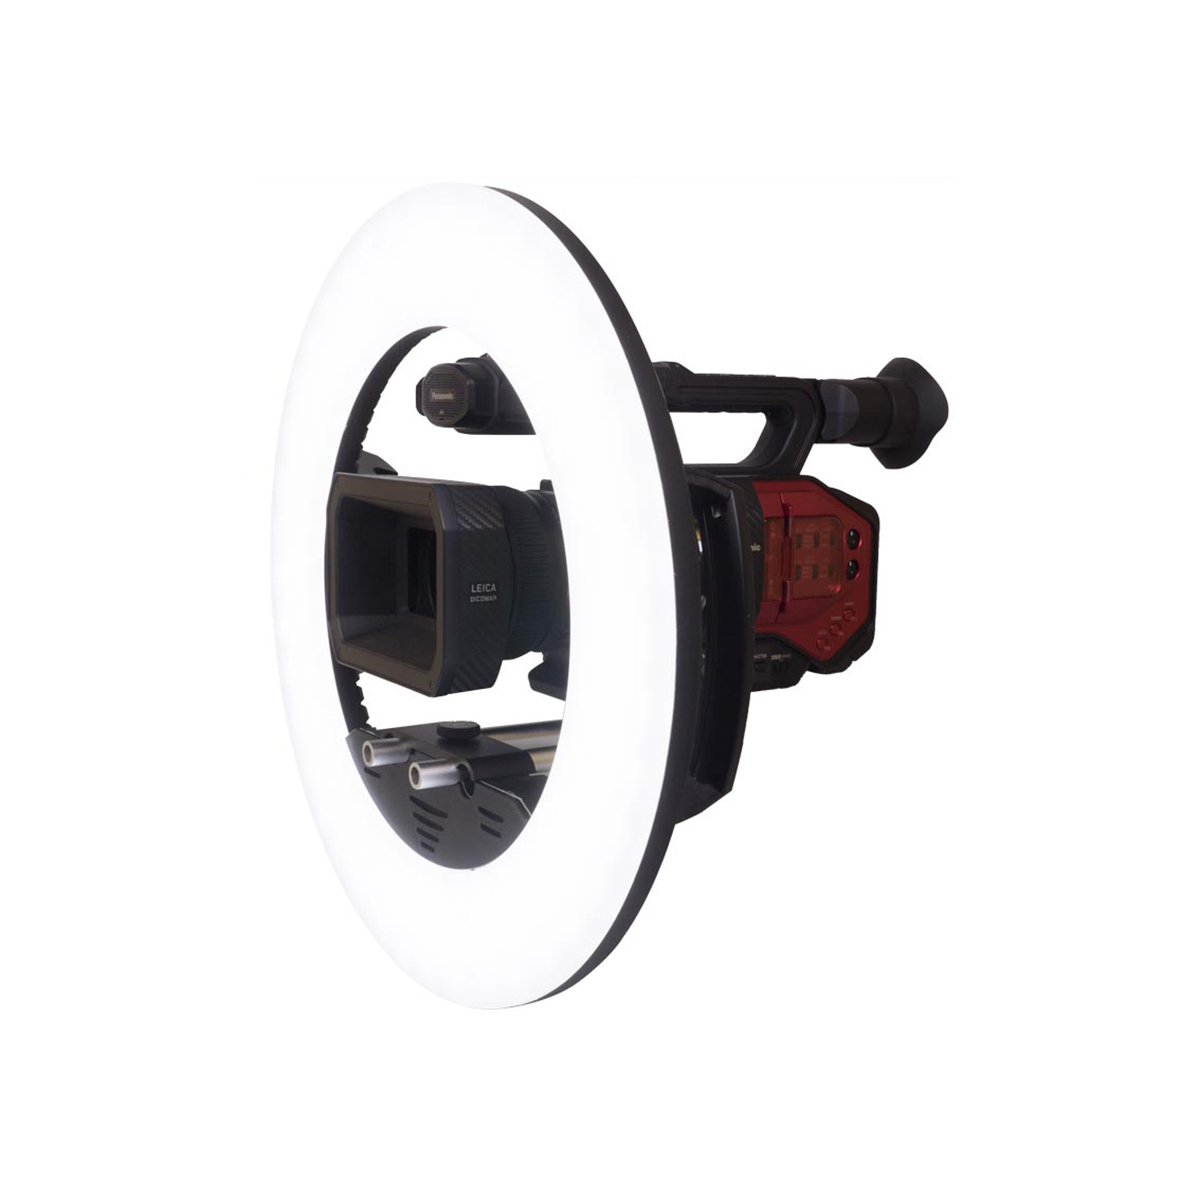 Immagine Ringlight Ledgo Led R320c